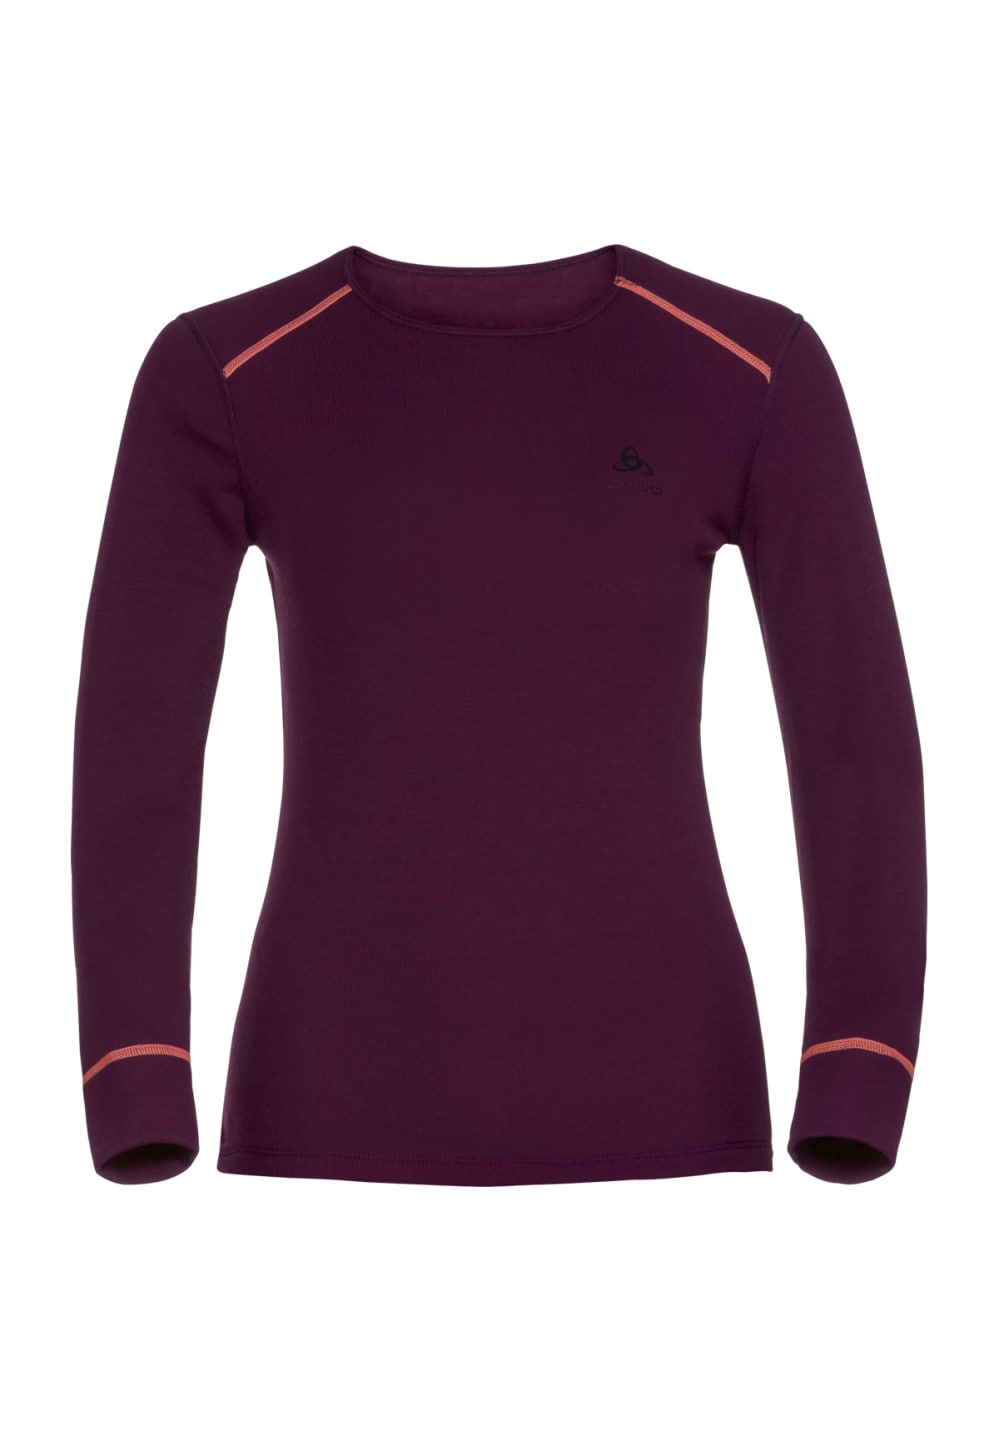 Odlo Long Sleeve Crew Neck Warm Femmes Maillot course